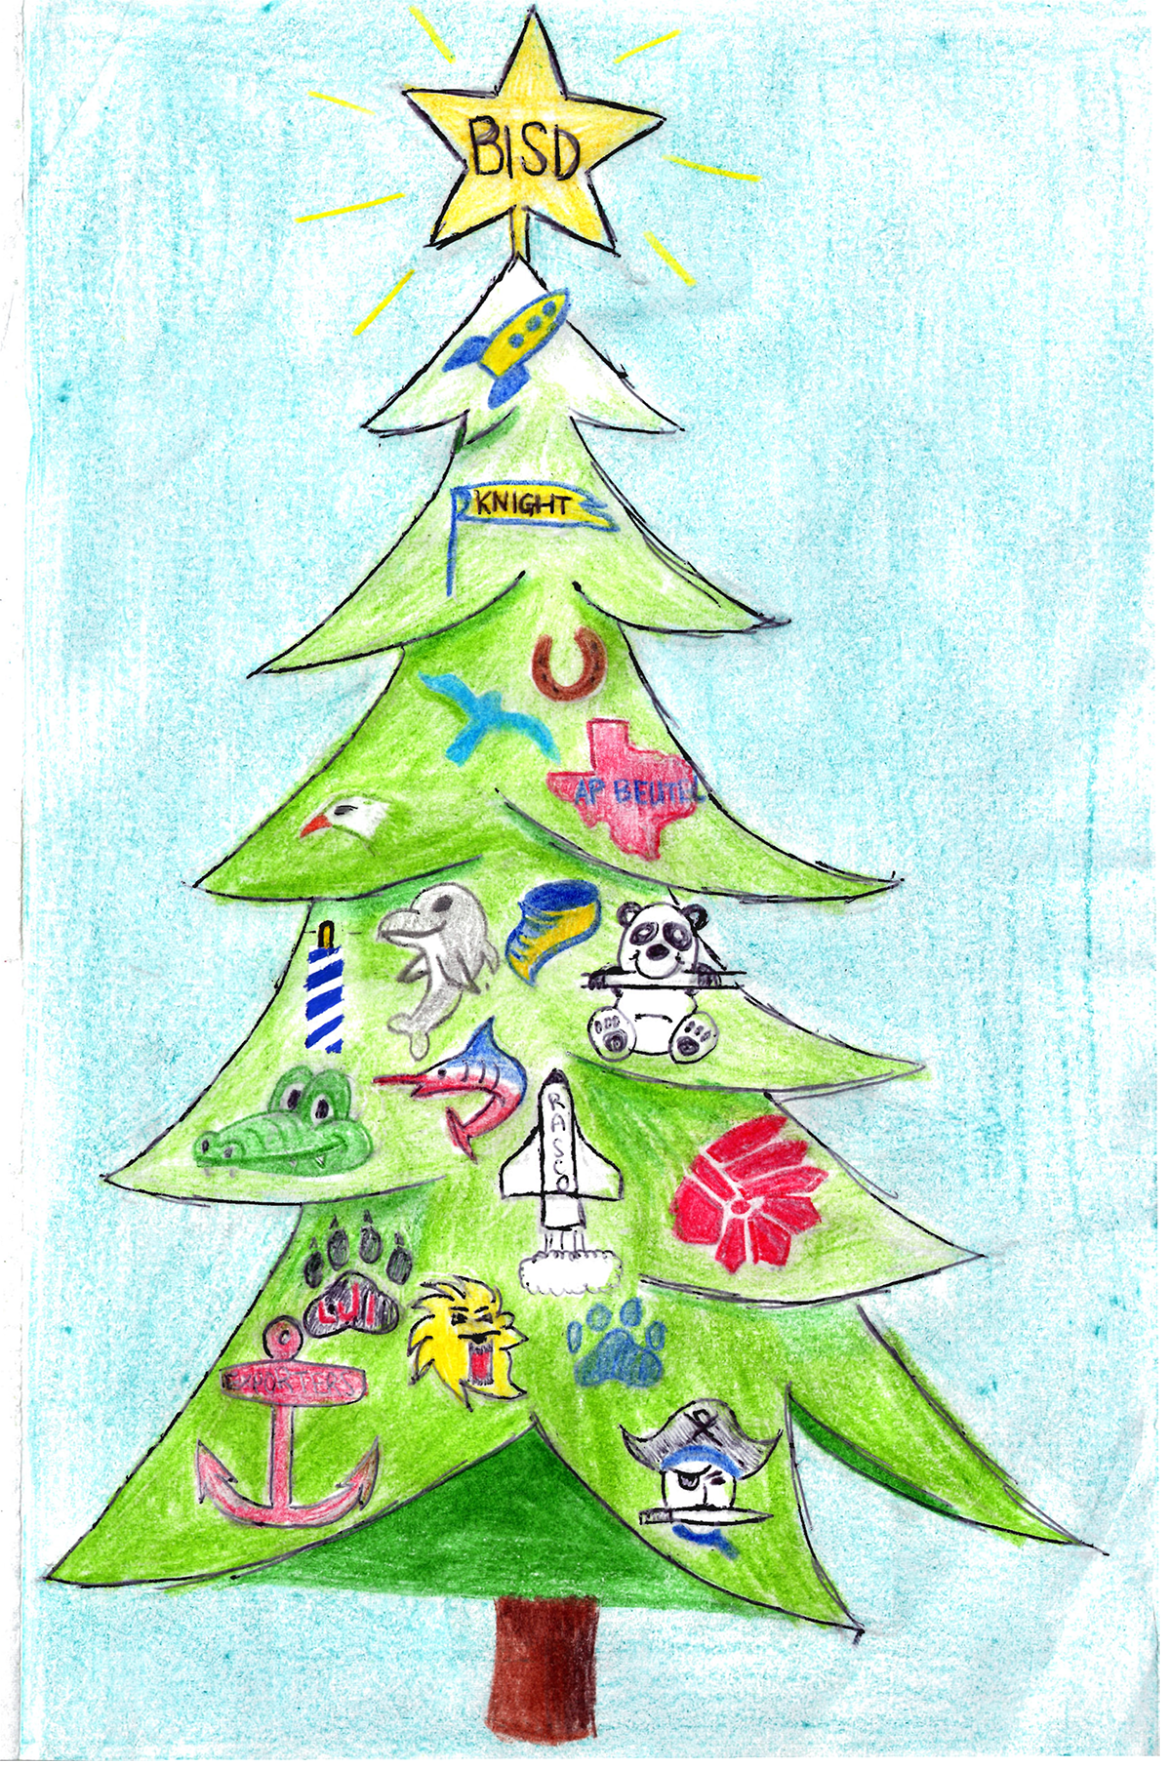 When Is Christmas Day Vacation Bisd 2020 BISD Student Artwork Selected for District Christmas Card | Brazos